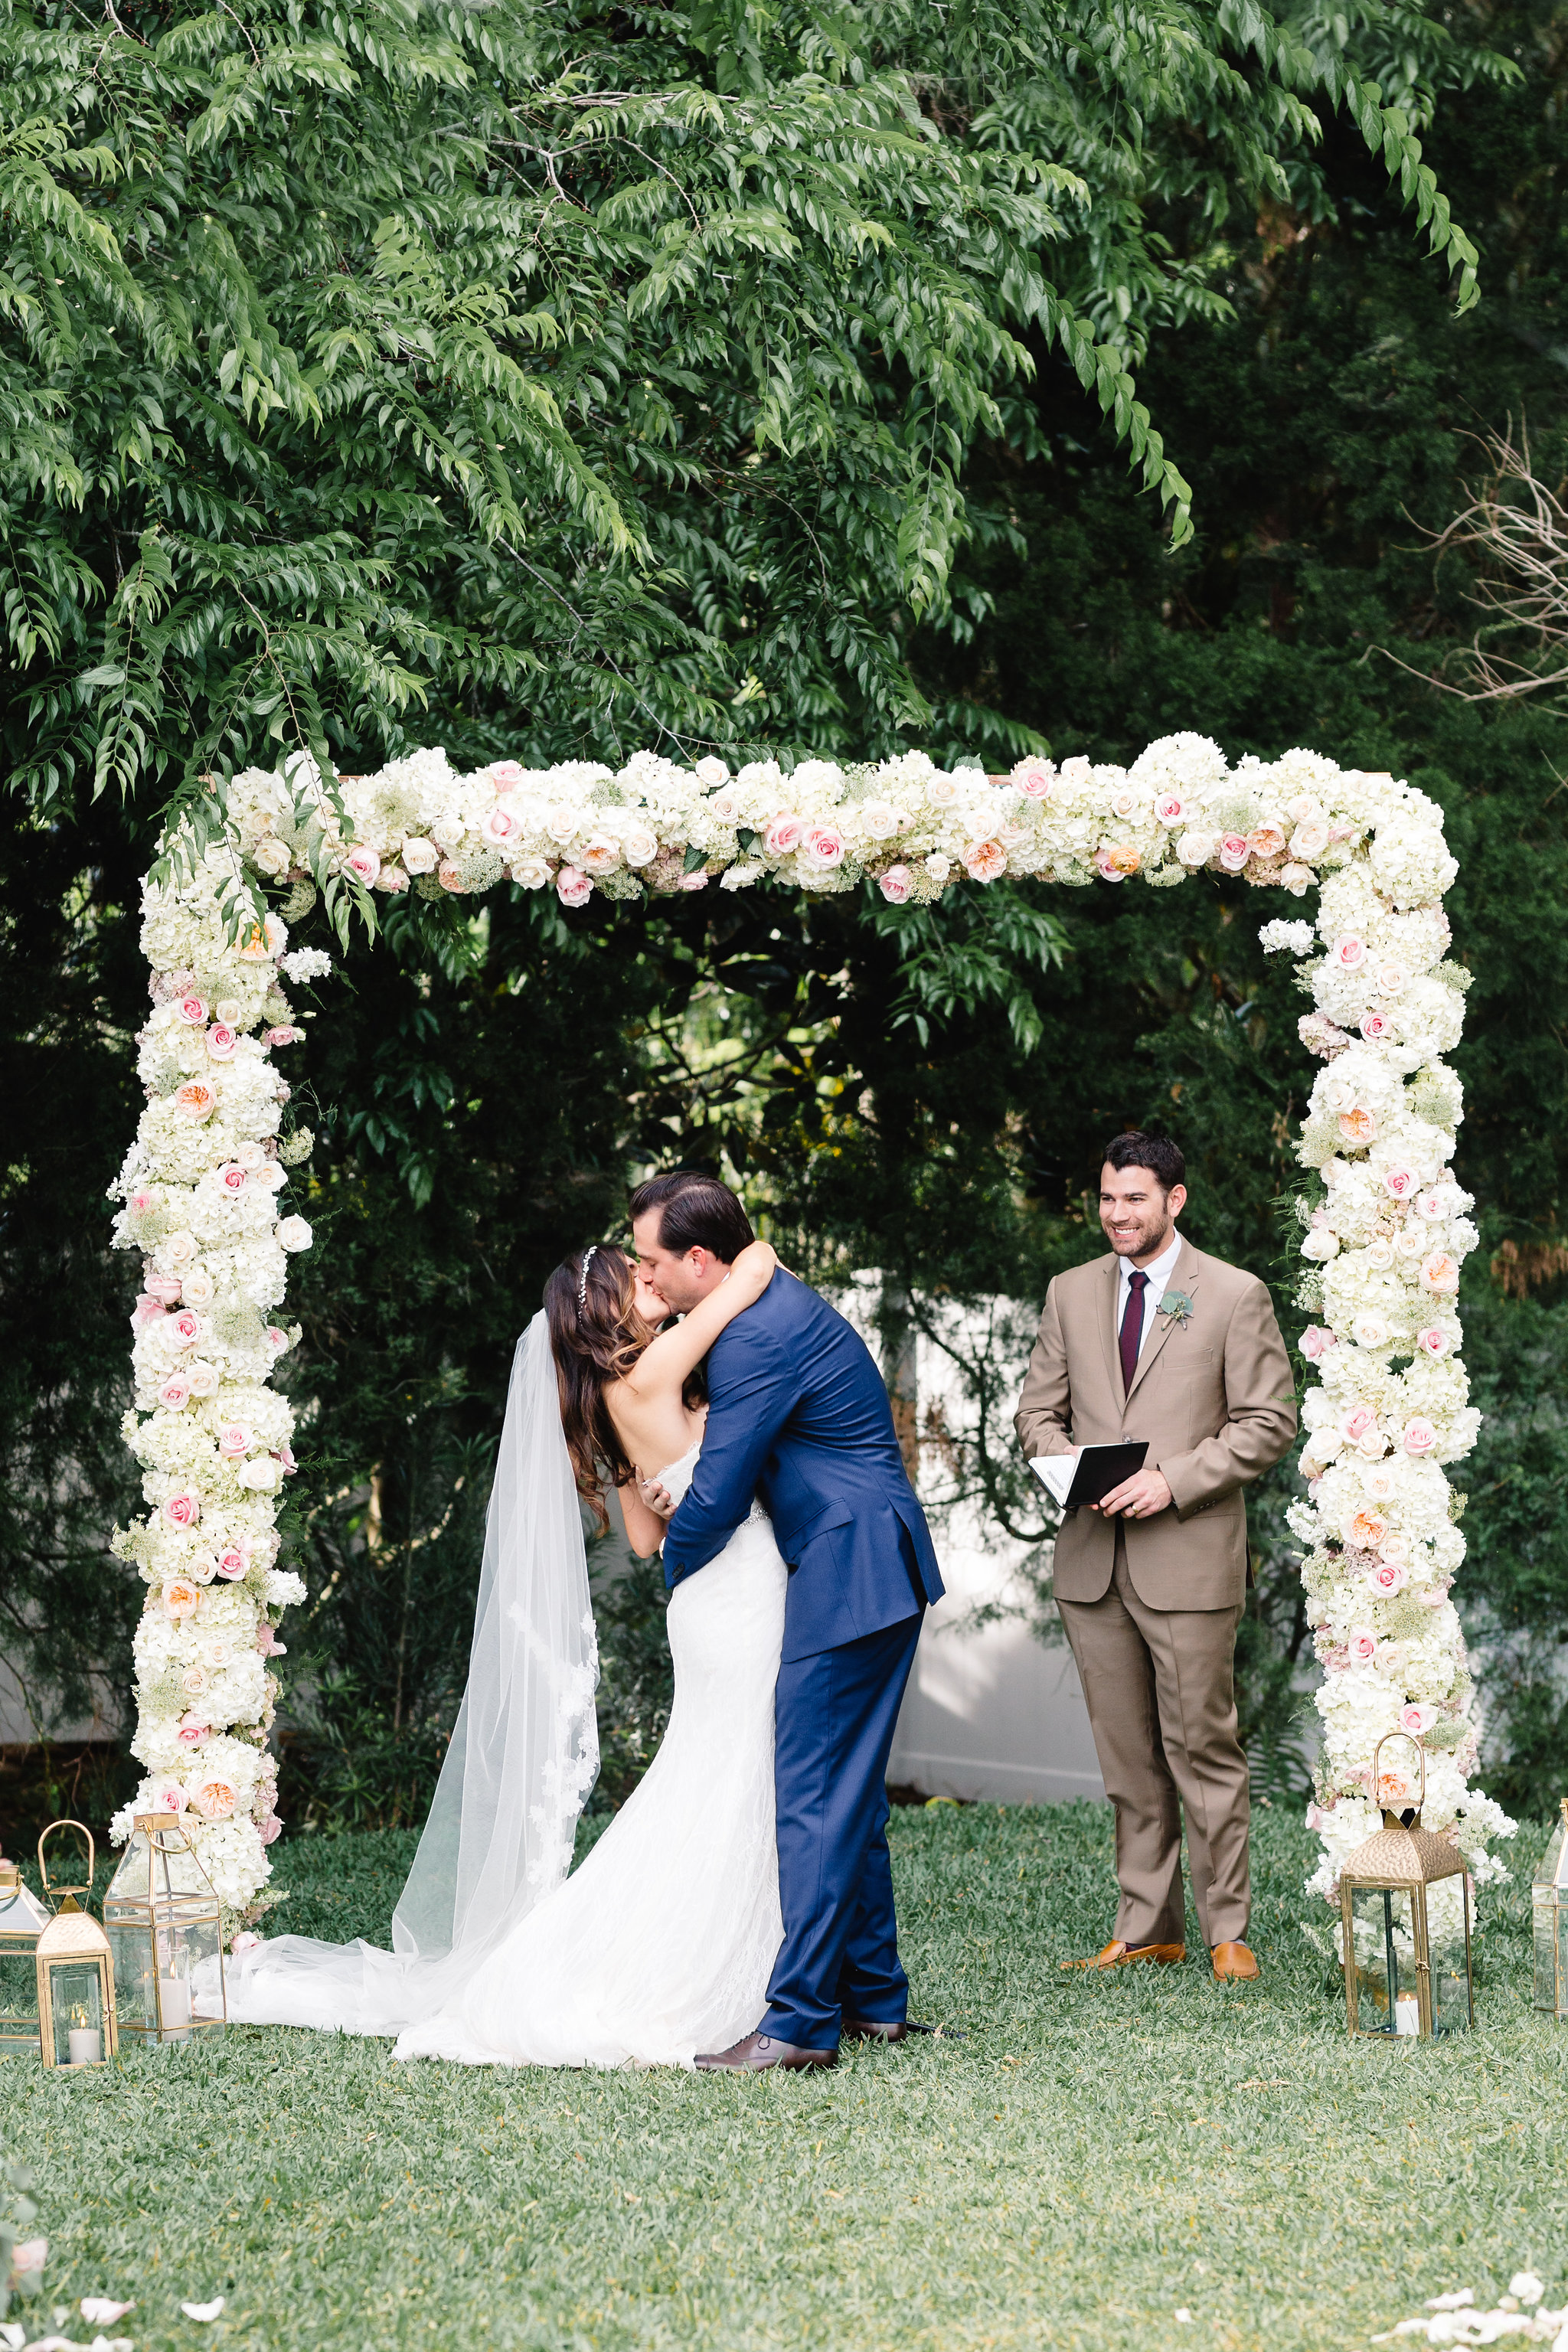 Floral covered ceremony arch  Blush & White Garden wedding at Luxmore Grande Estate in Orlando, Florida  Orlando Wedding Planner Blue Ribbon Weddings  Orlando Wedding Photographer JP Pratt Photography  Wedding Ceremony & Reception at Luxmore Grande Estate